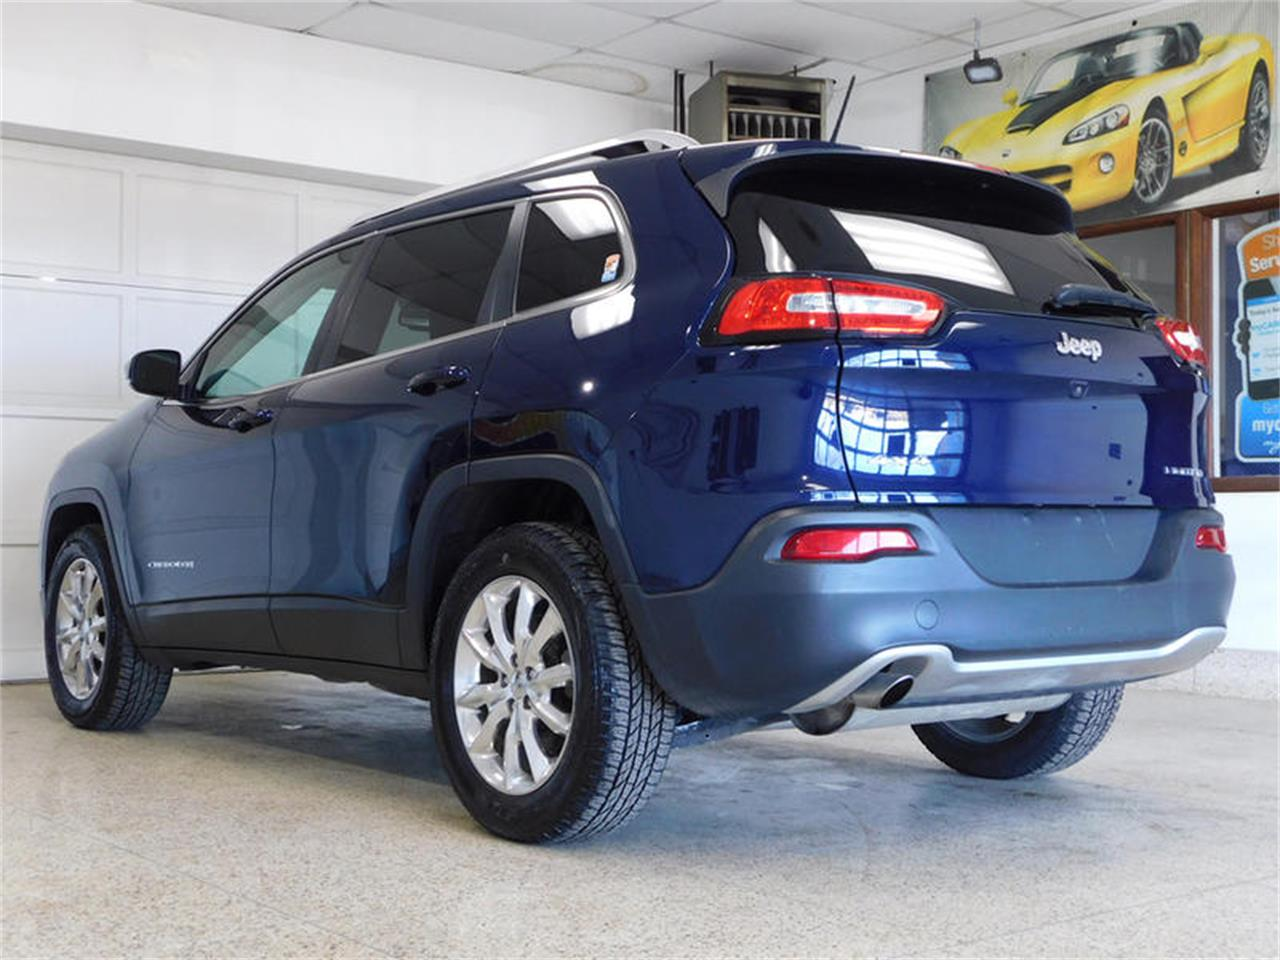 Large Picture of '14 Jeep Cherokee - $17,538.00 - PQXB